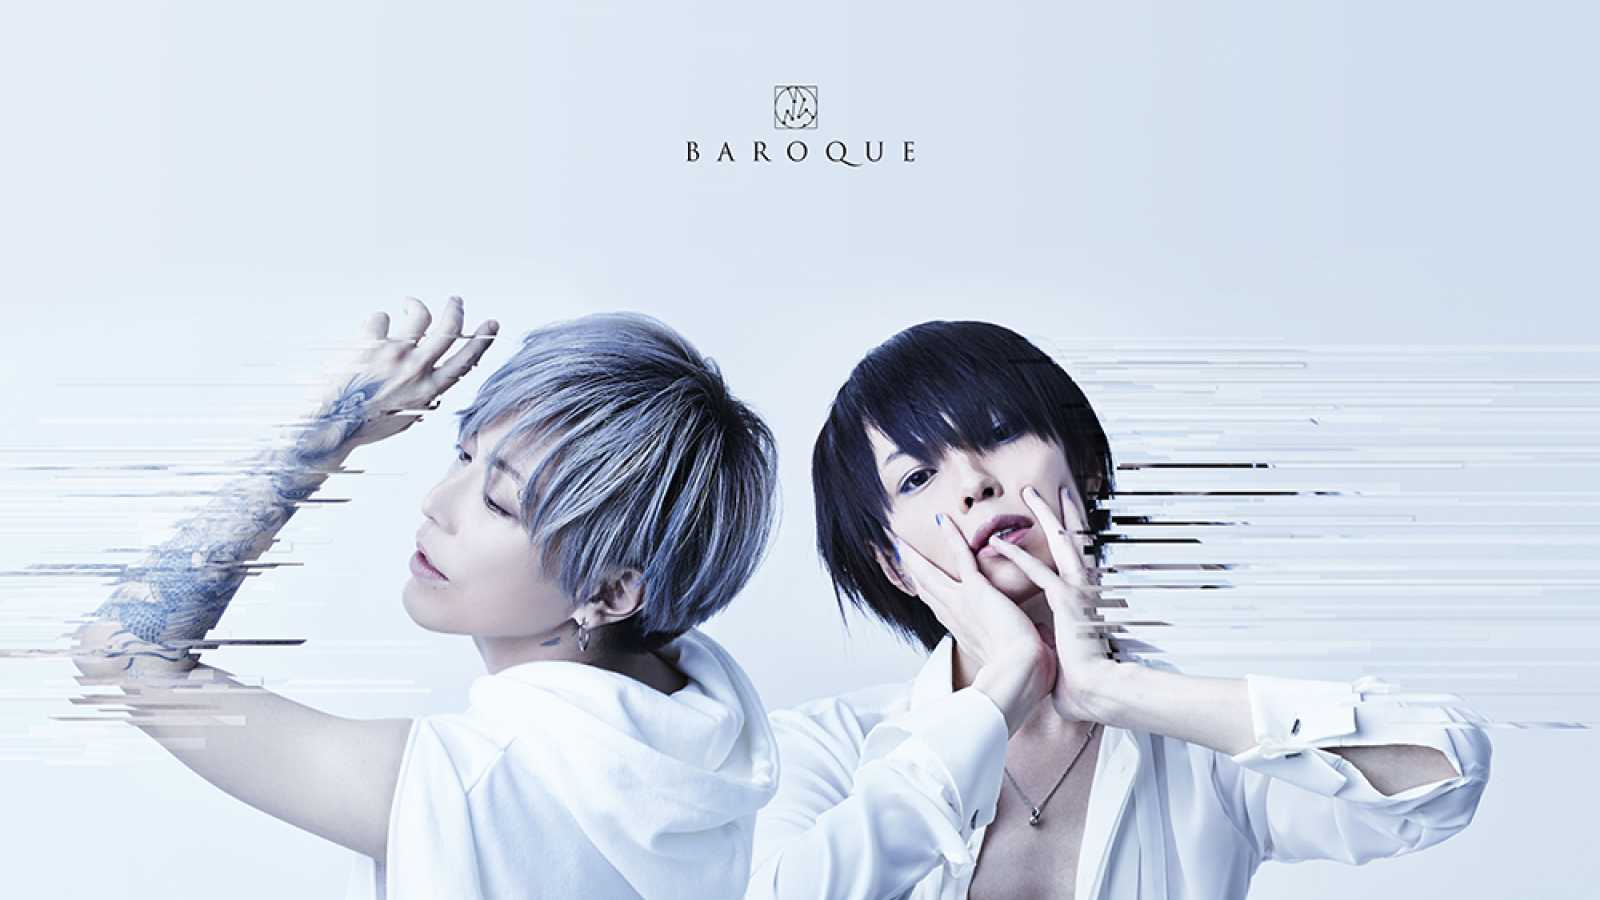 BAROQUE Reveal New Song